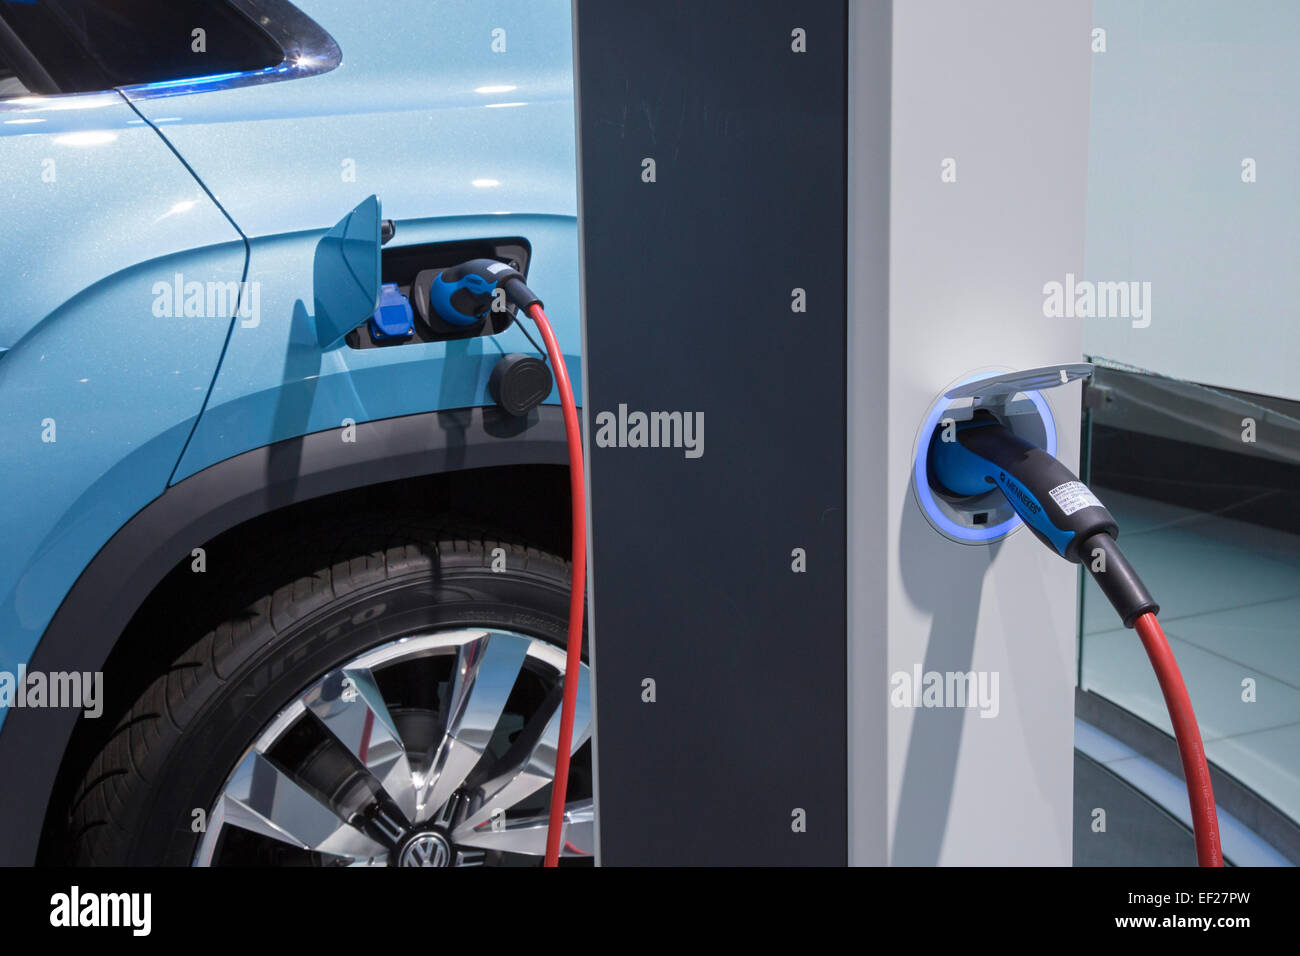 Detroit, Michigan - The VW Cross Coupé GTE concept plug-in hybrid car on display at the North American International - Stock Image